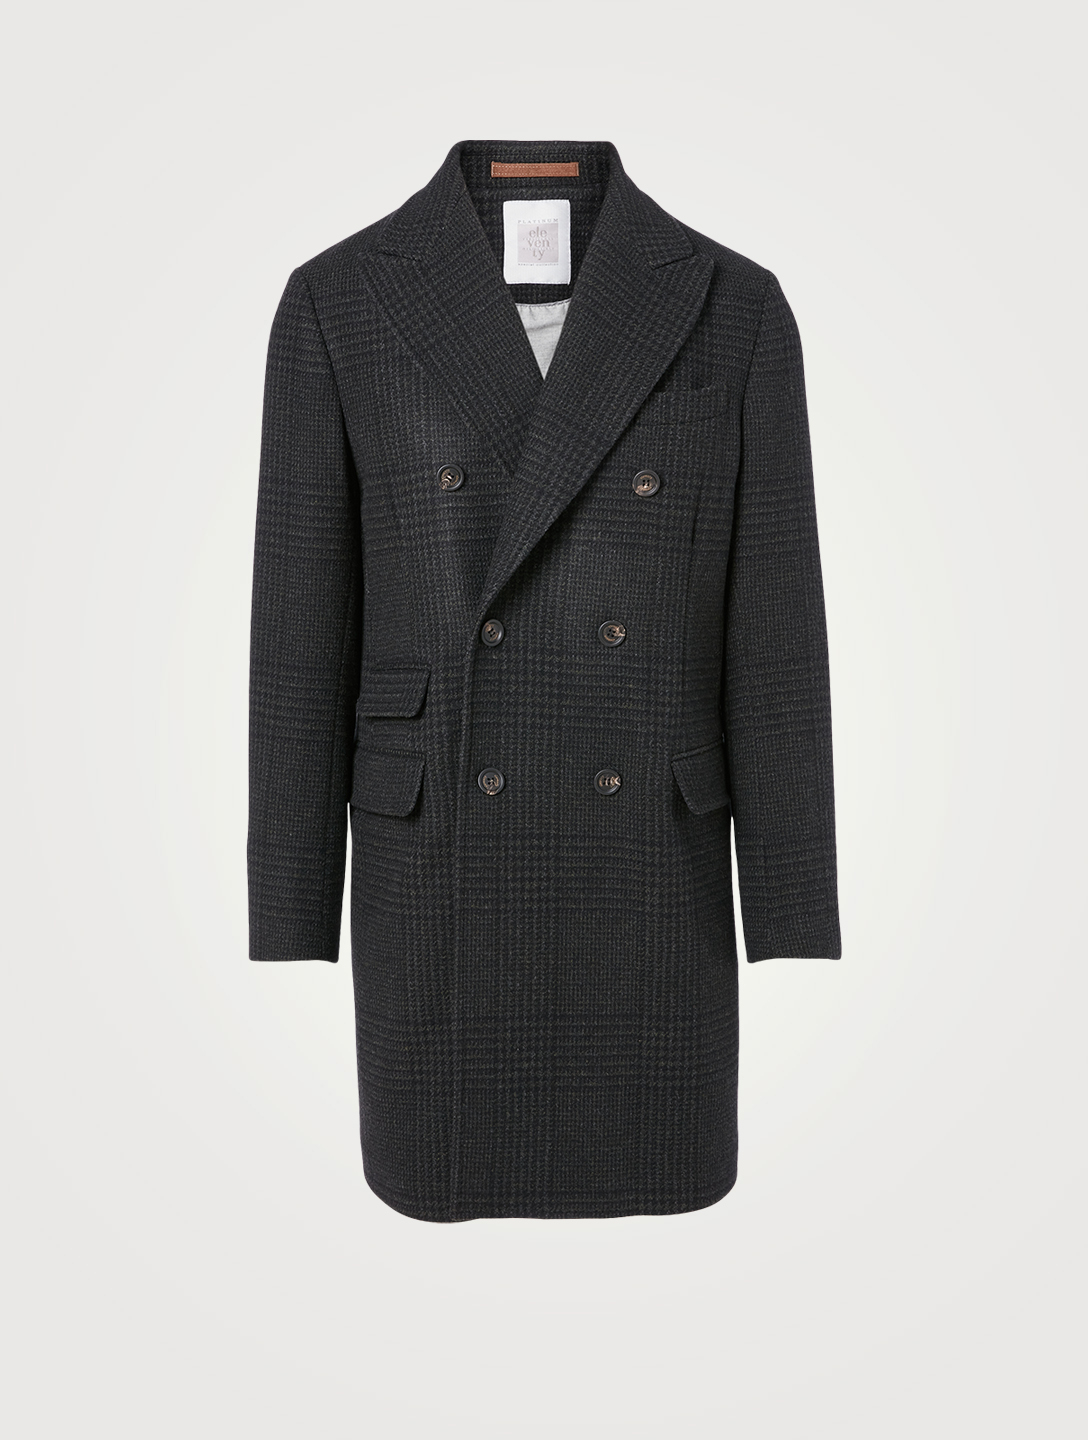 ELEVENTY Wool And Alpaca Double-Breasted Coat In Check Print Men's Grey